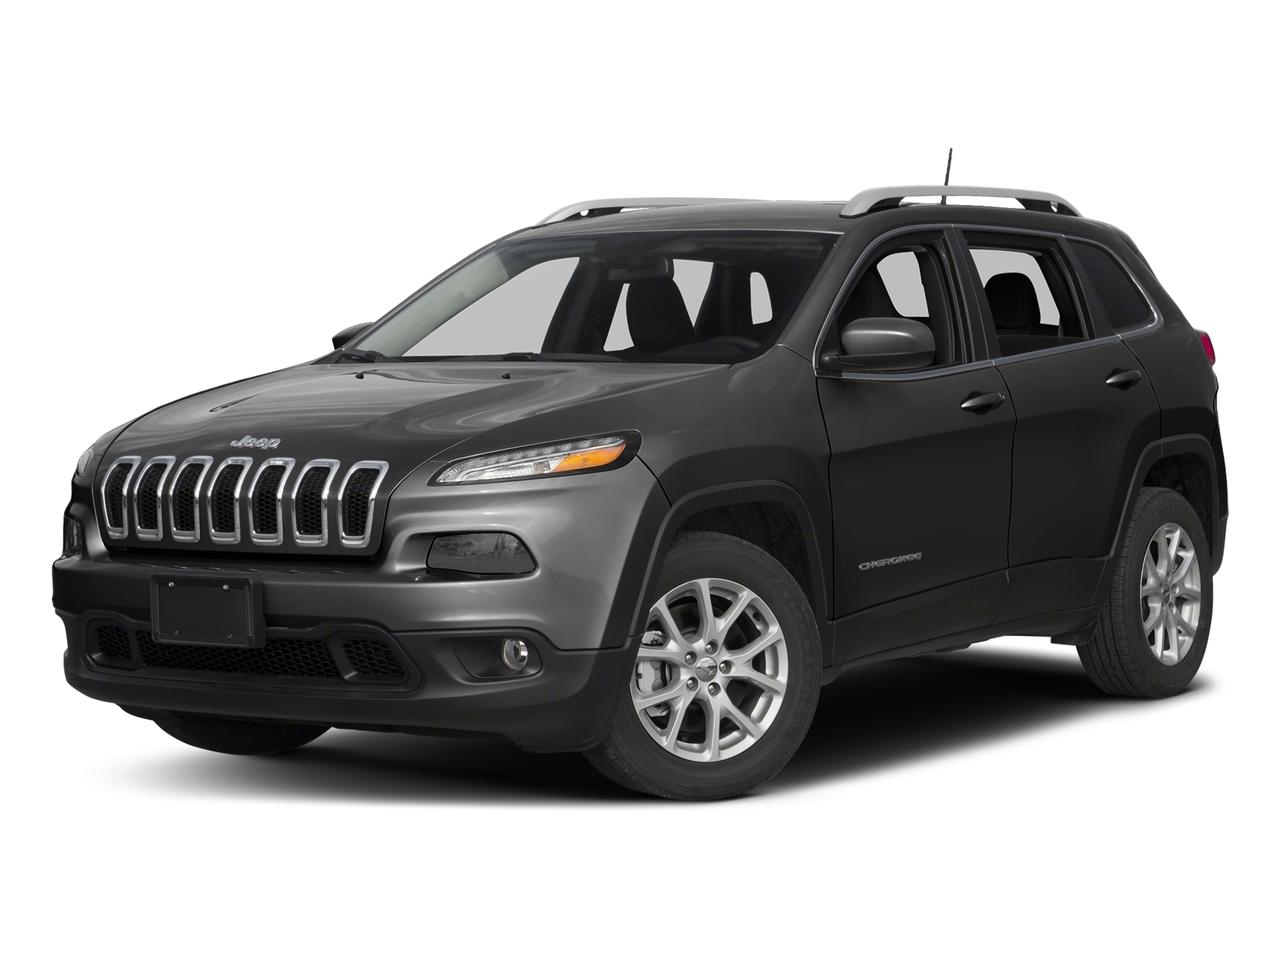 2016 Jeep Cherokee Vehicle Photo in Casper, WY 82609